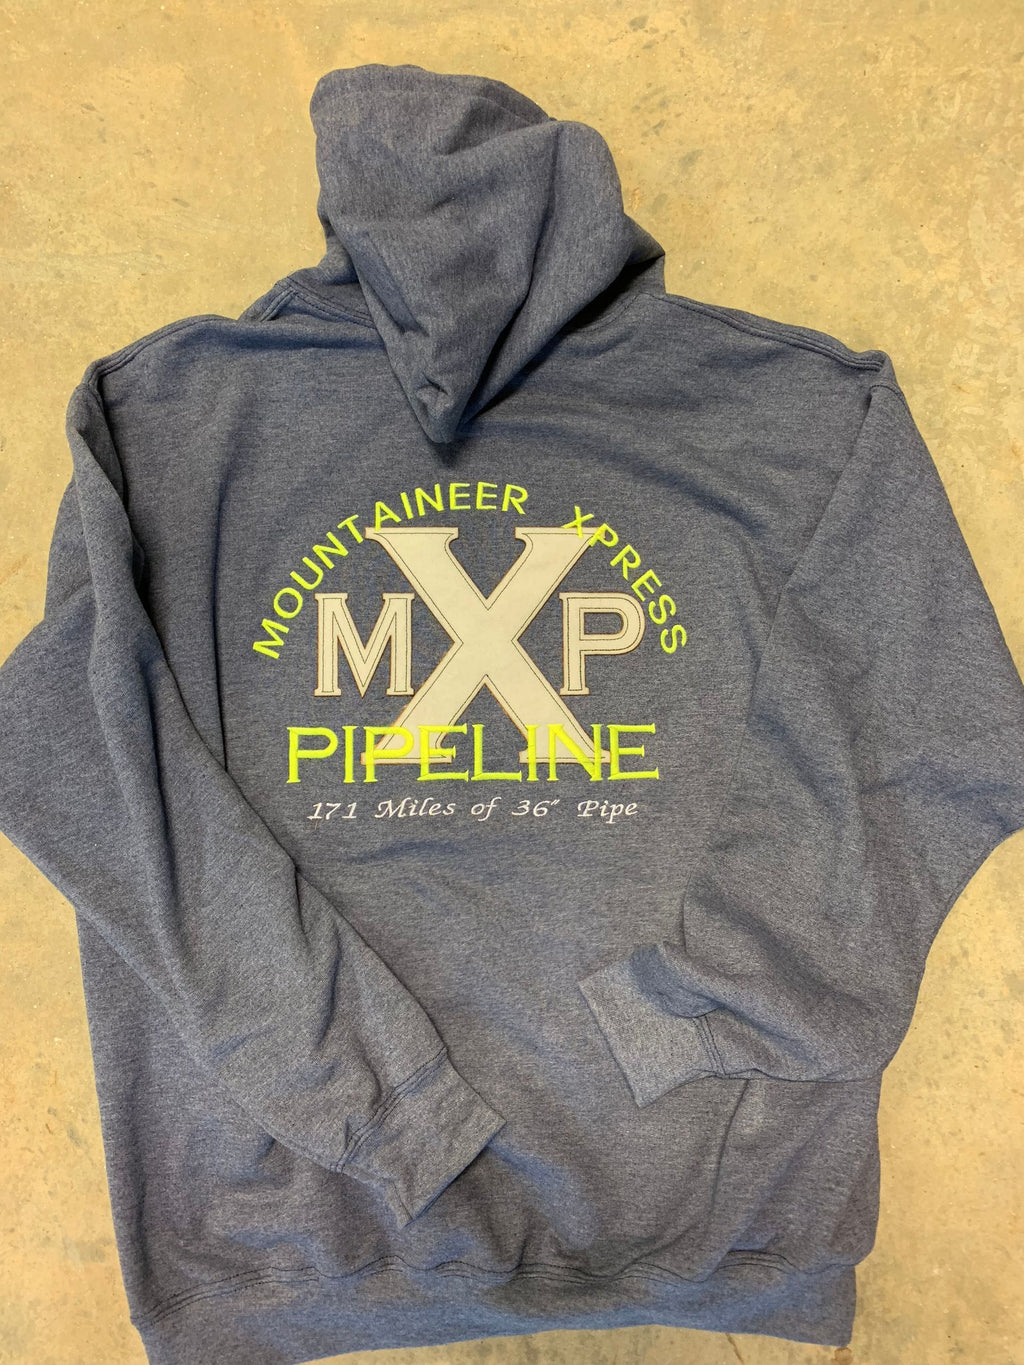 MXP EMBROIDERED HOODIE (Mountaineer Xpress Pipeline)